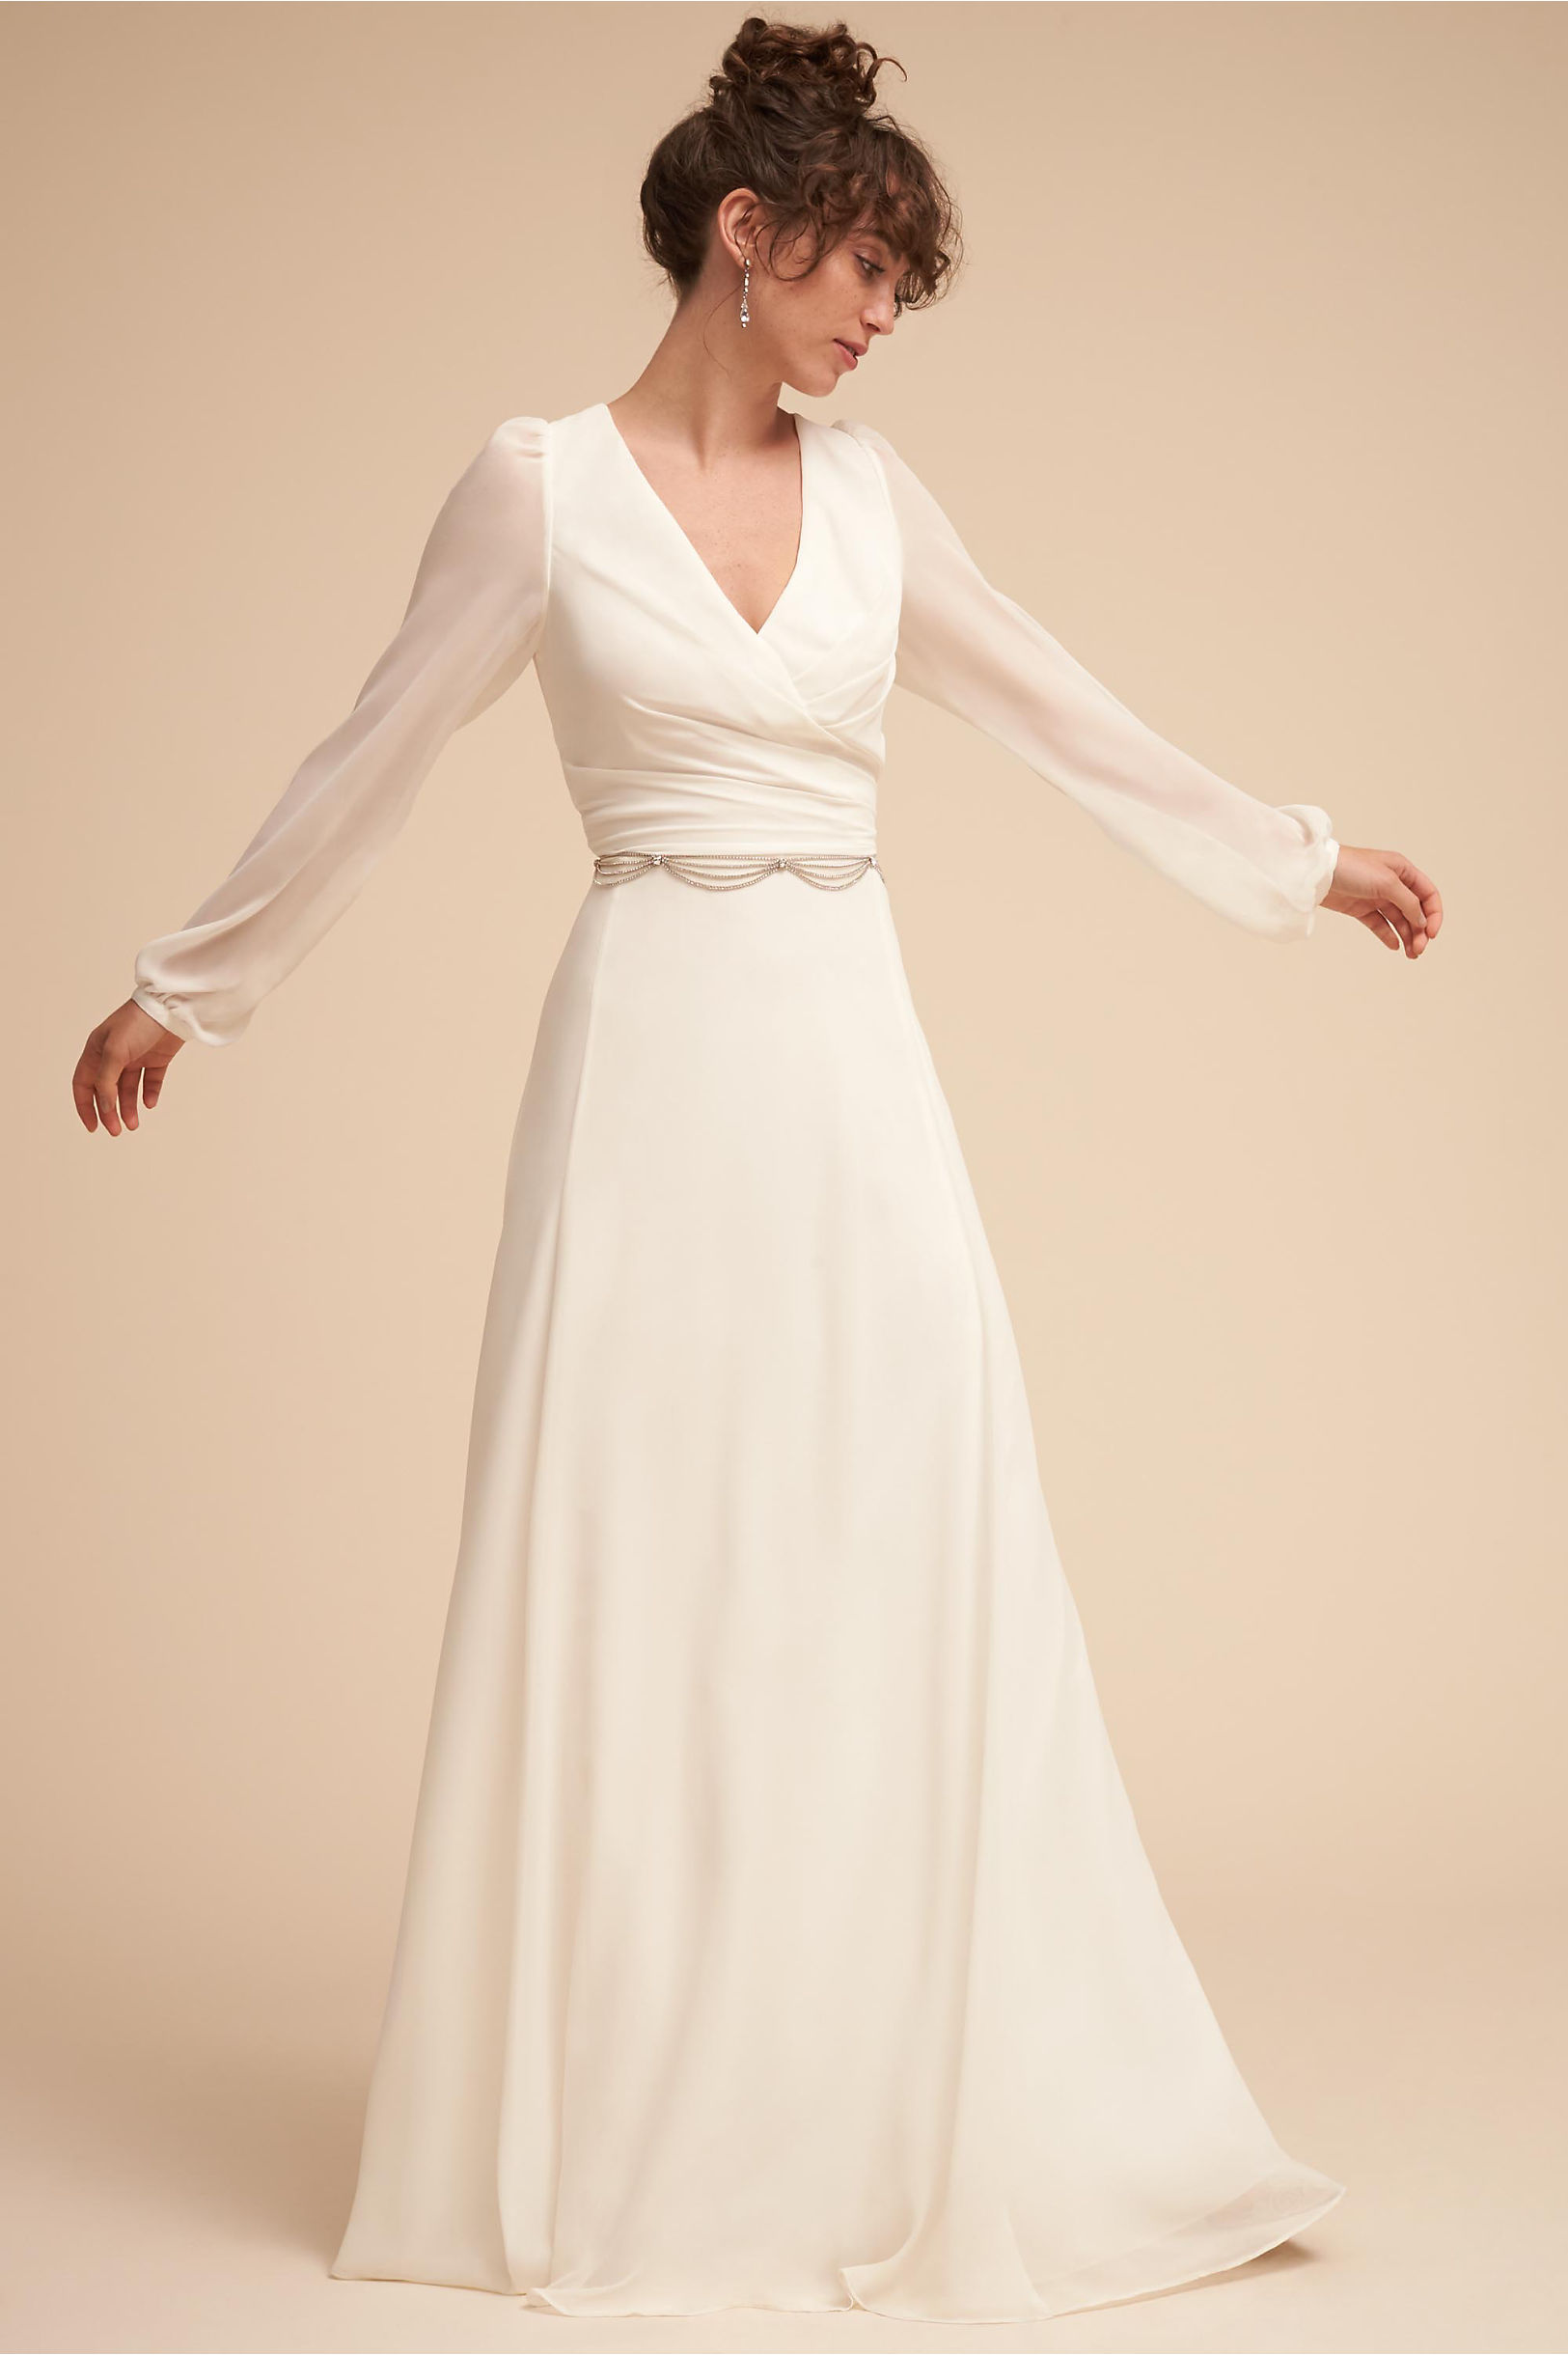 Vintage Inspired Wedding Dress | Vintage Style Wedding Dresses Nova Dress $240.00 AT vintagedancer.com